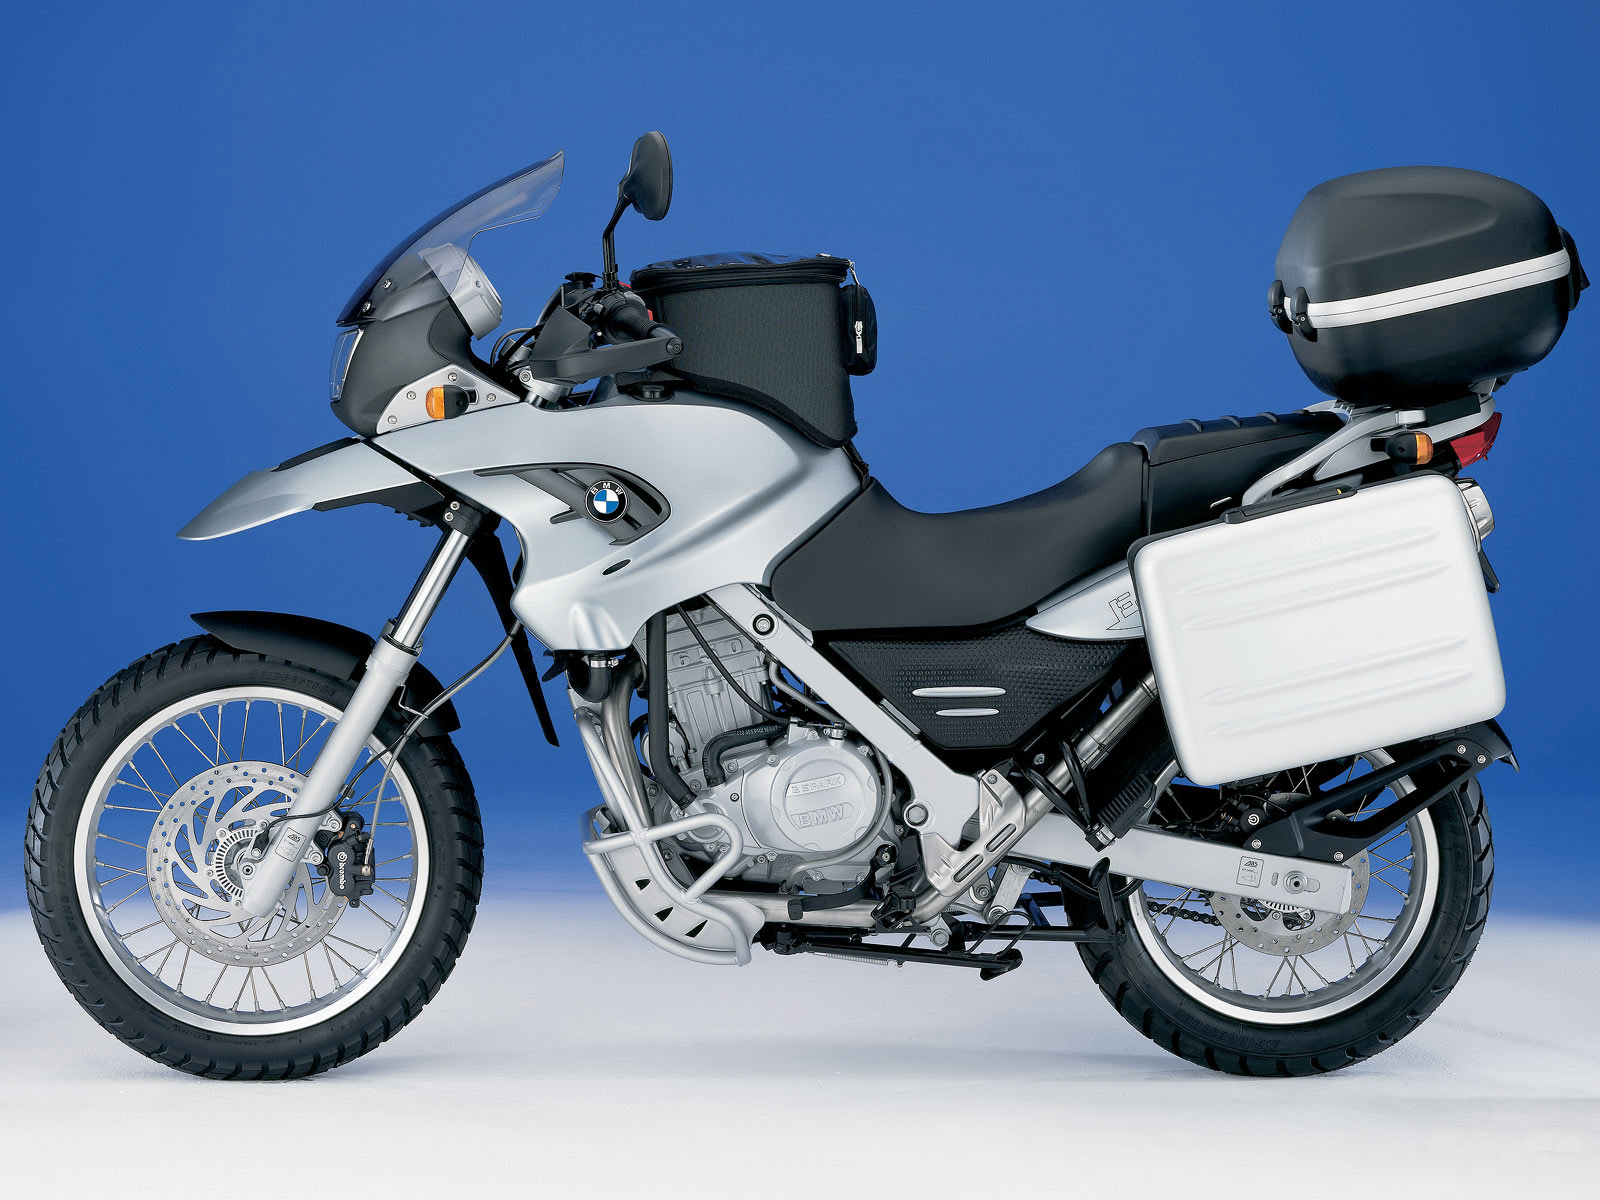 BMW G 650 GS 2010 images #8854